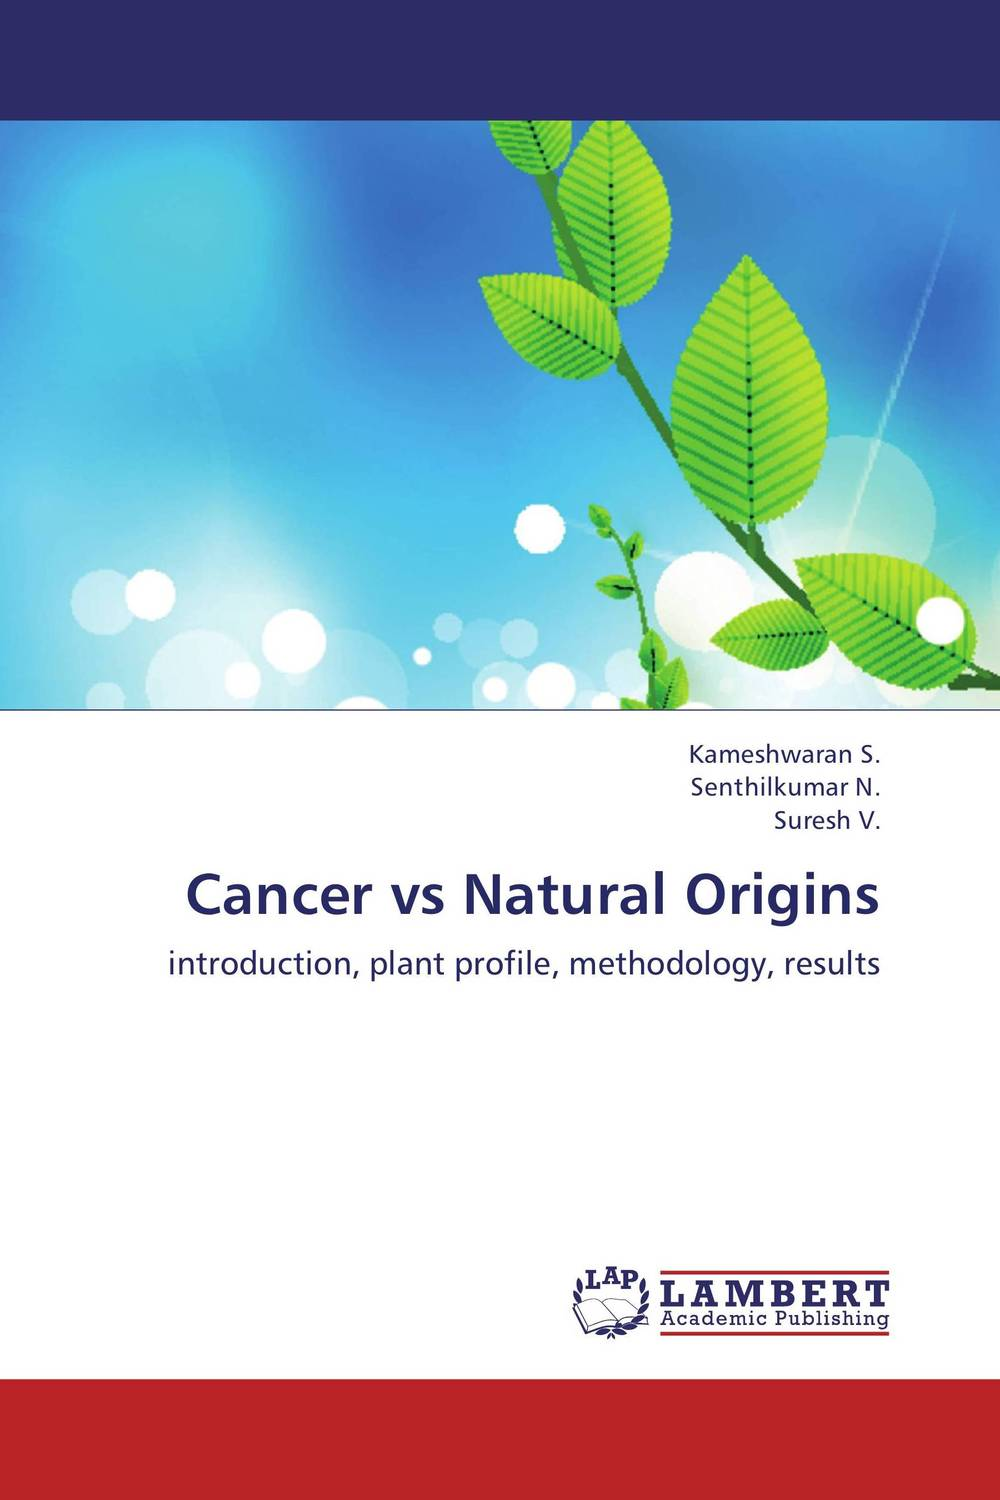 Cancer vs Natural Origins vitamin b17 caps bitter apricot kernel extract anti aging anti cancer 100pcs bottle